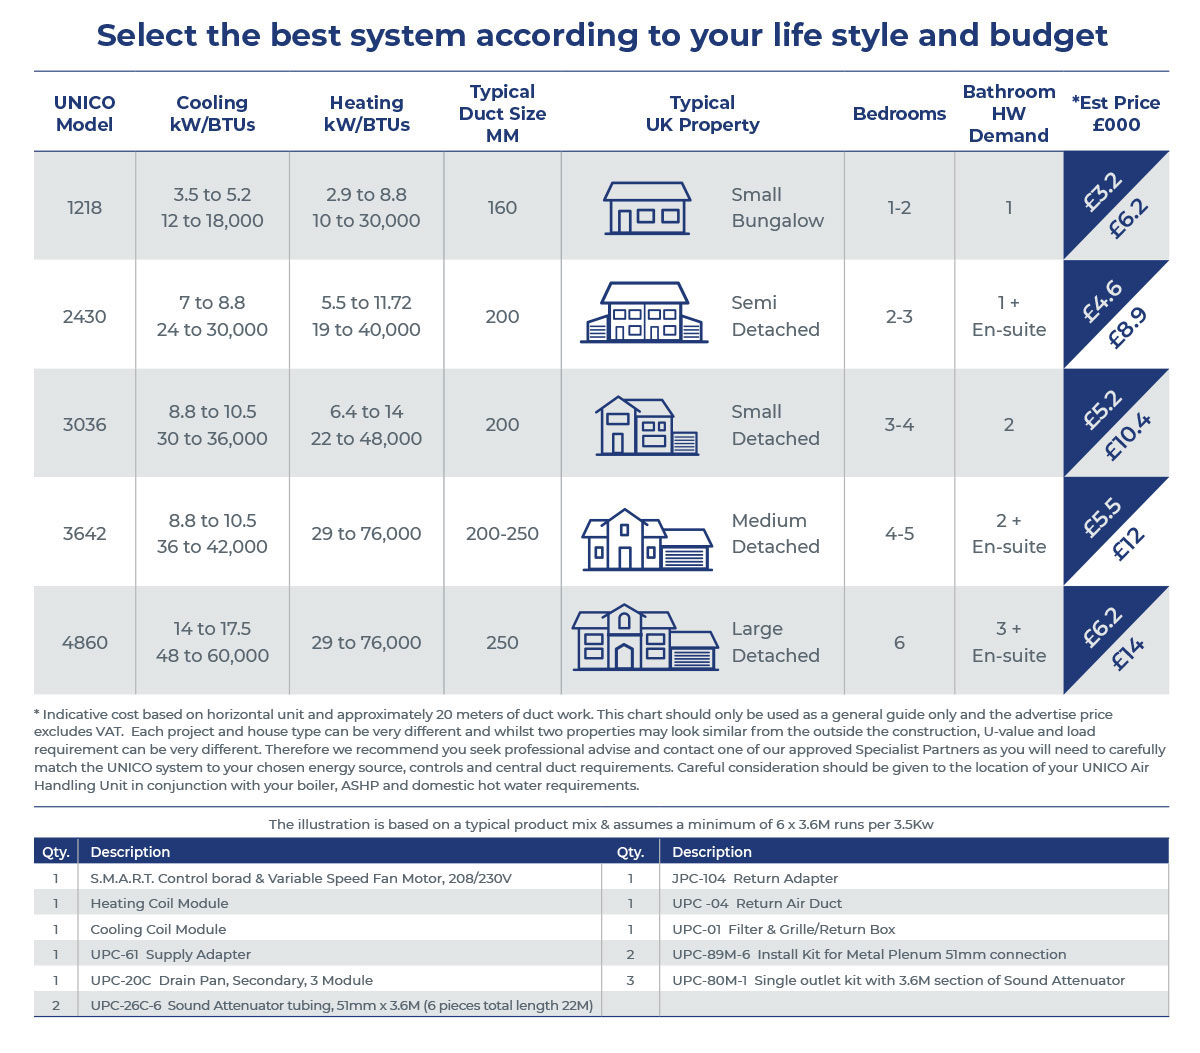 Unico System - Selection Chart